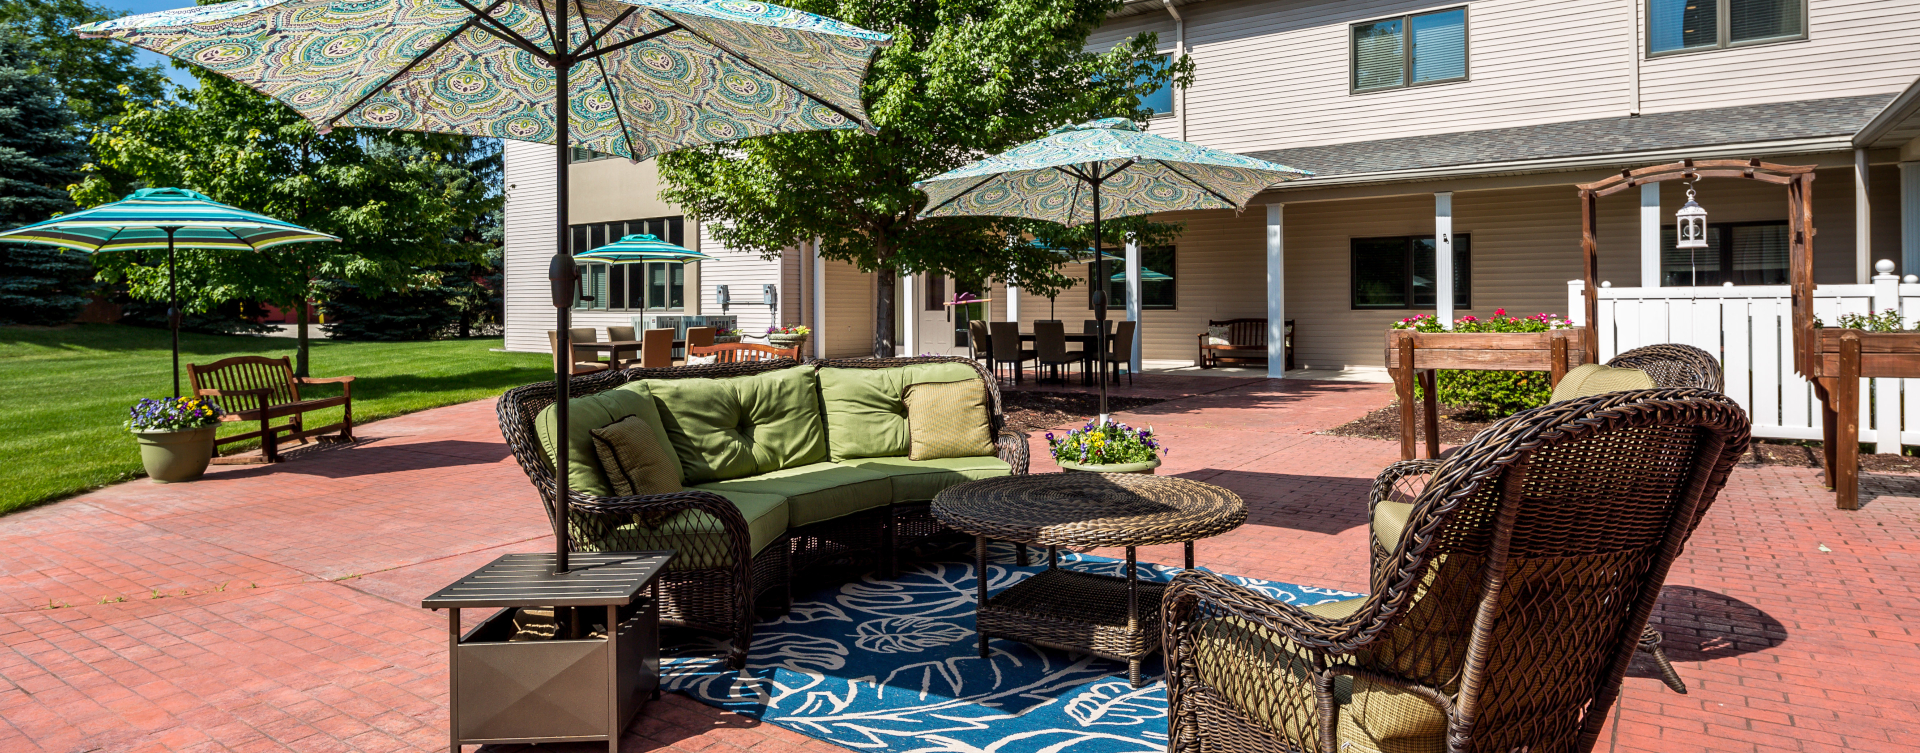 Enjoy the outdoors in a whole new light by stepping into our secure courtyard at Bickford of West Lansing